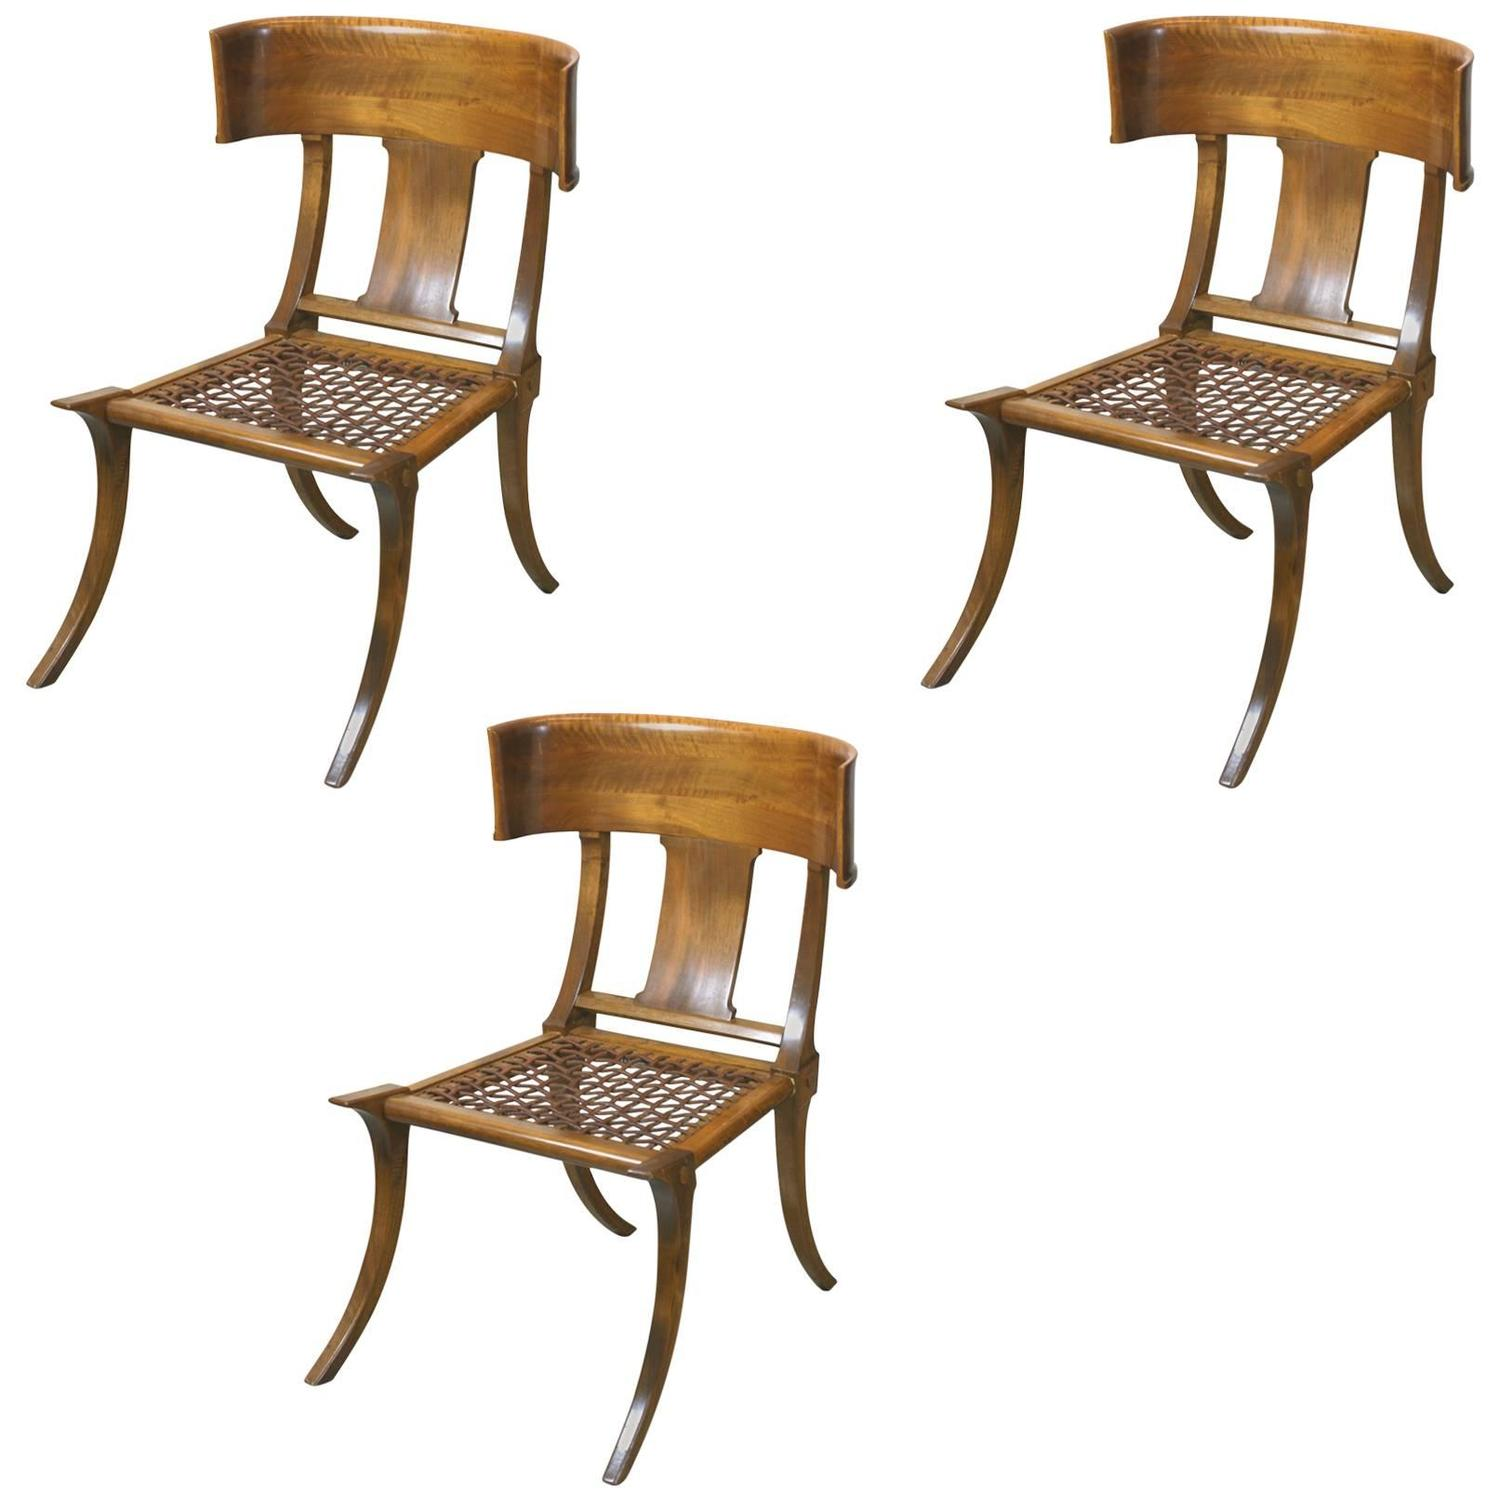 Good T.H. Robsjohn Gibbings Klismos Chairs By Saridis, Athens For Sale At 1stdibs